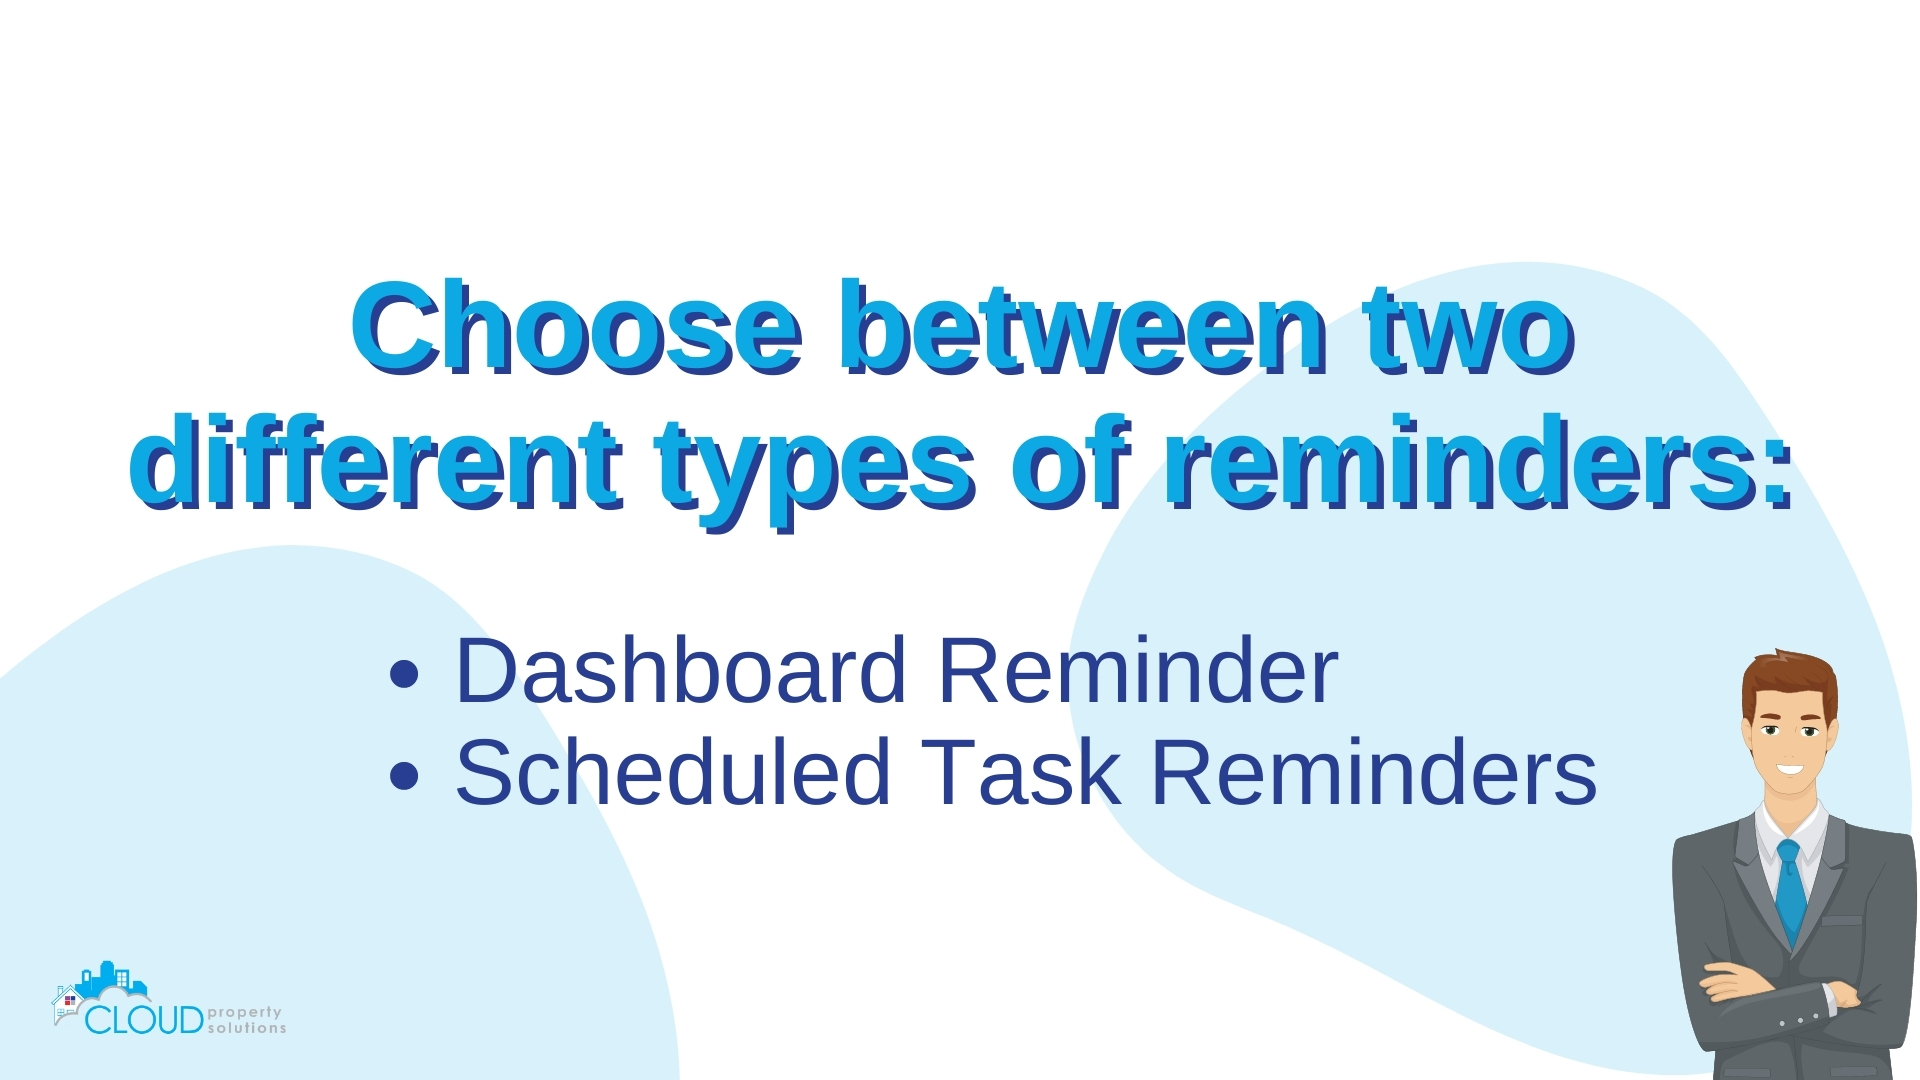 Choose between two different types of reminders.